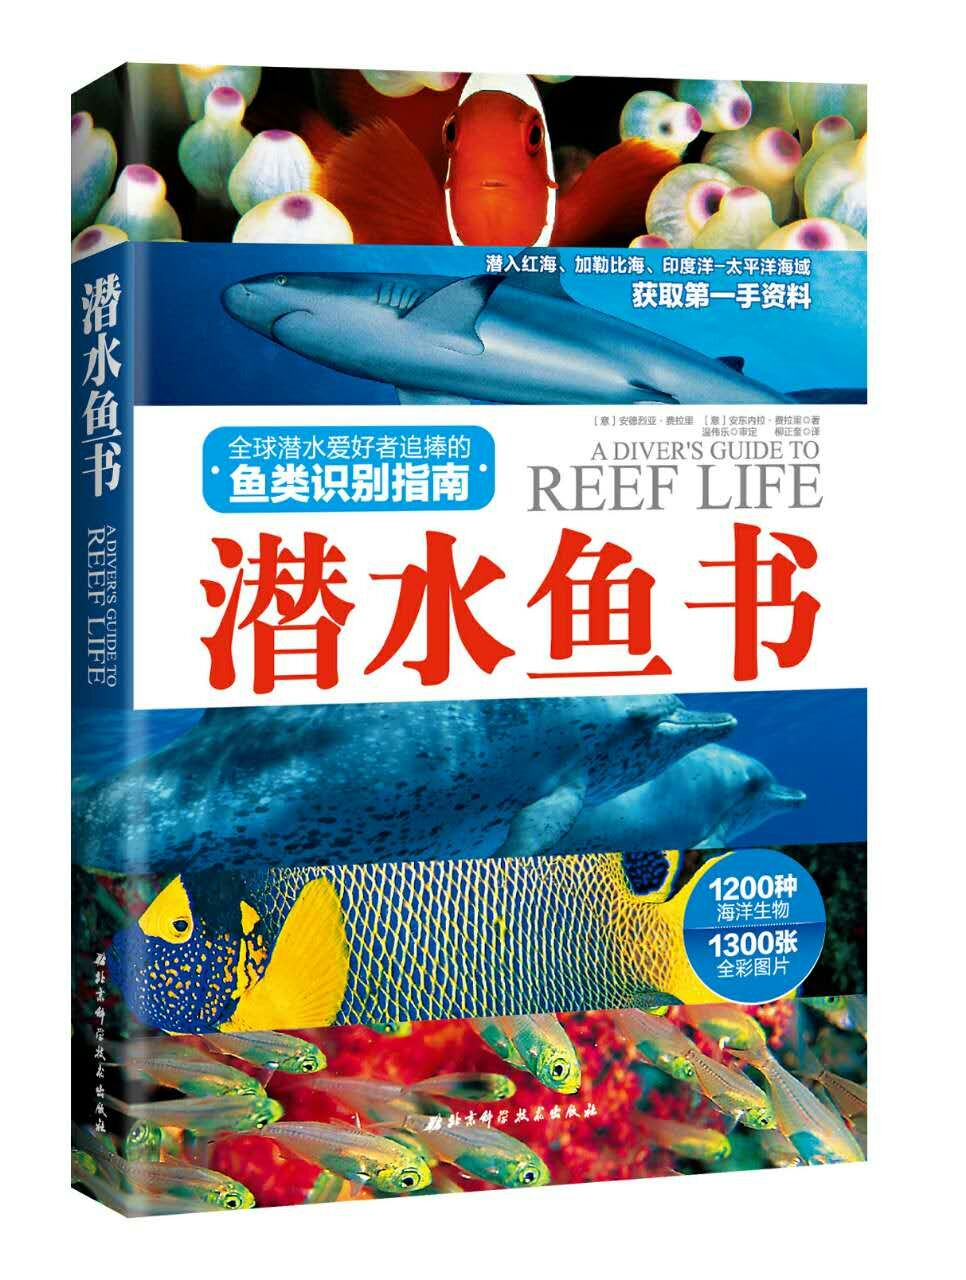 [ скрытая тур ] дайвинг рыба книга A Diver's Guide to Reef Life на китайском языке